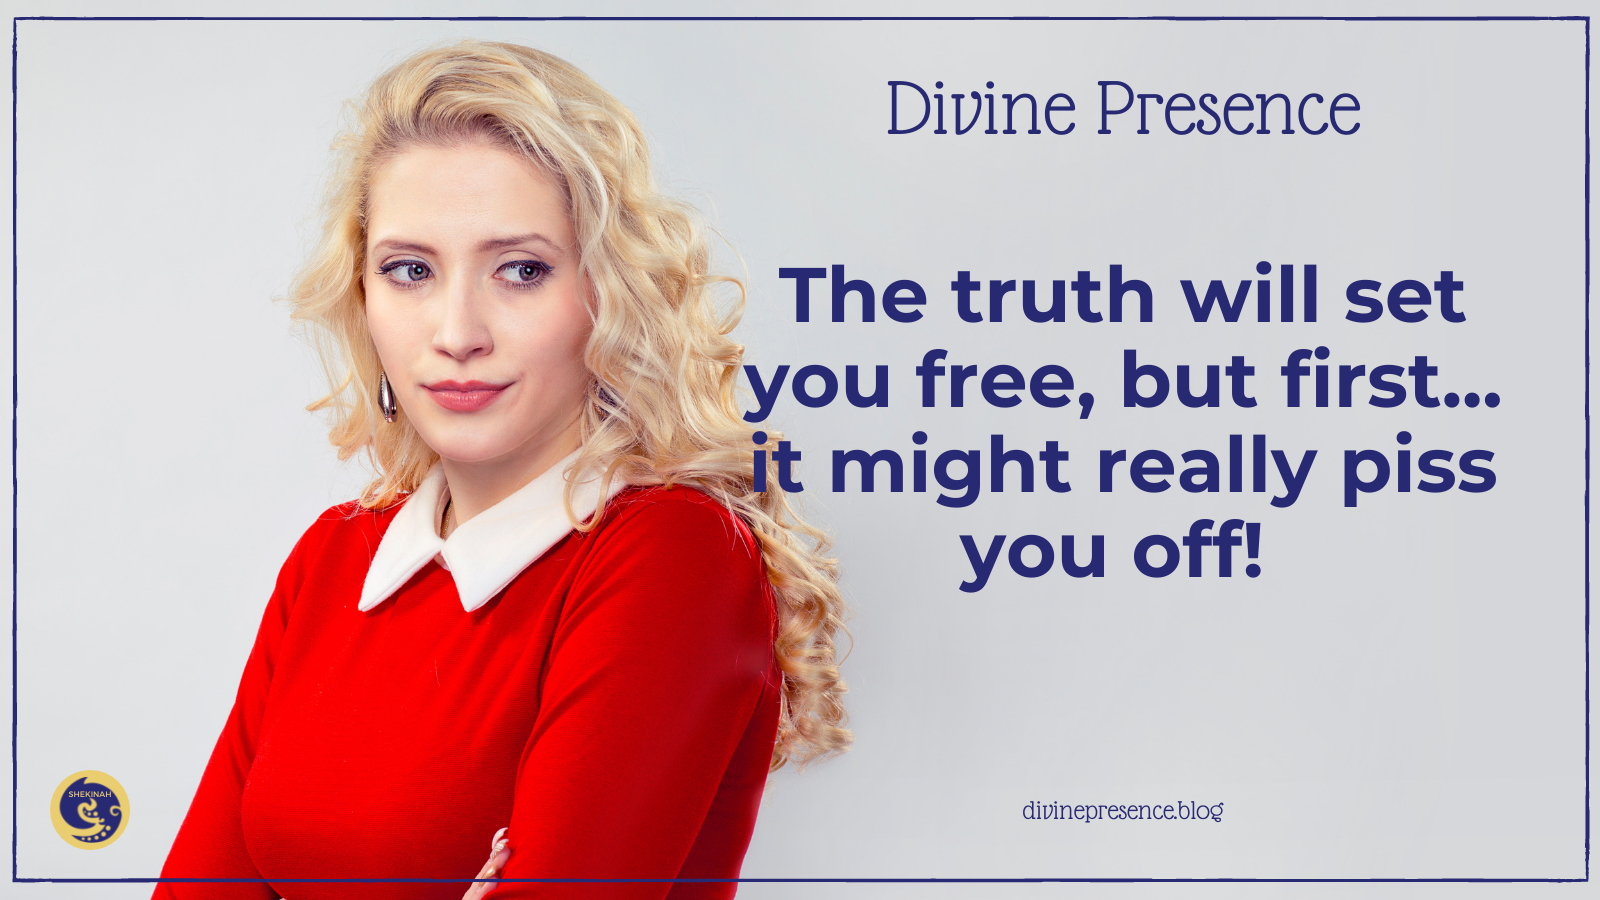 The truth will set you free, but first... it might really piss you off!